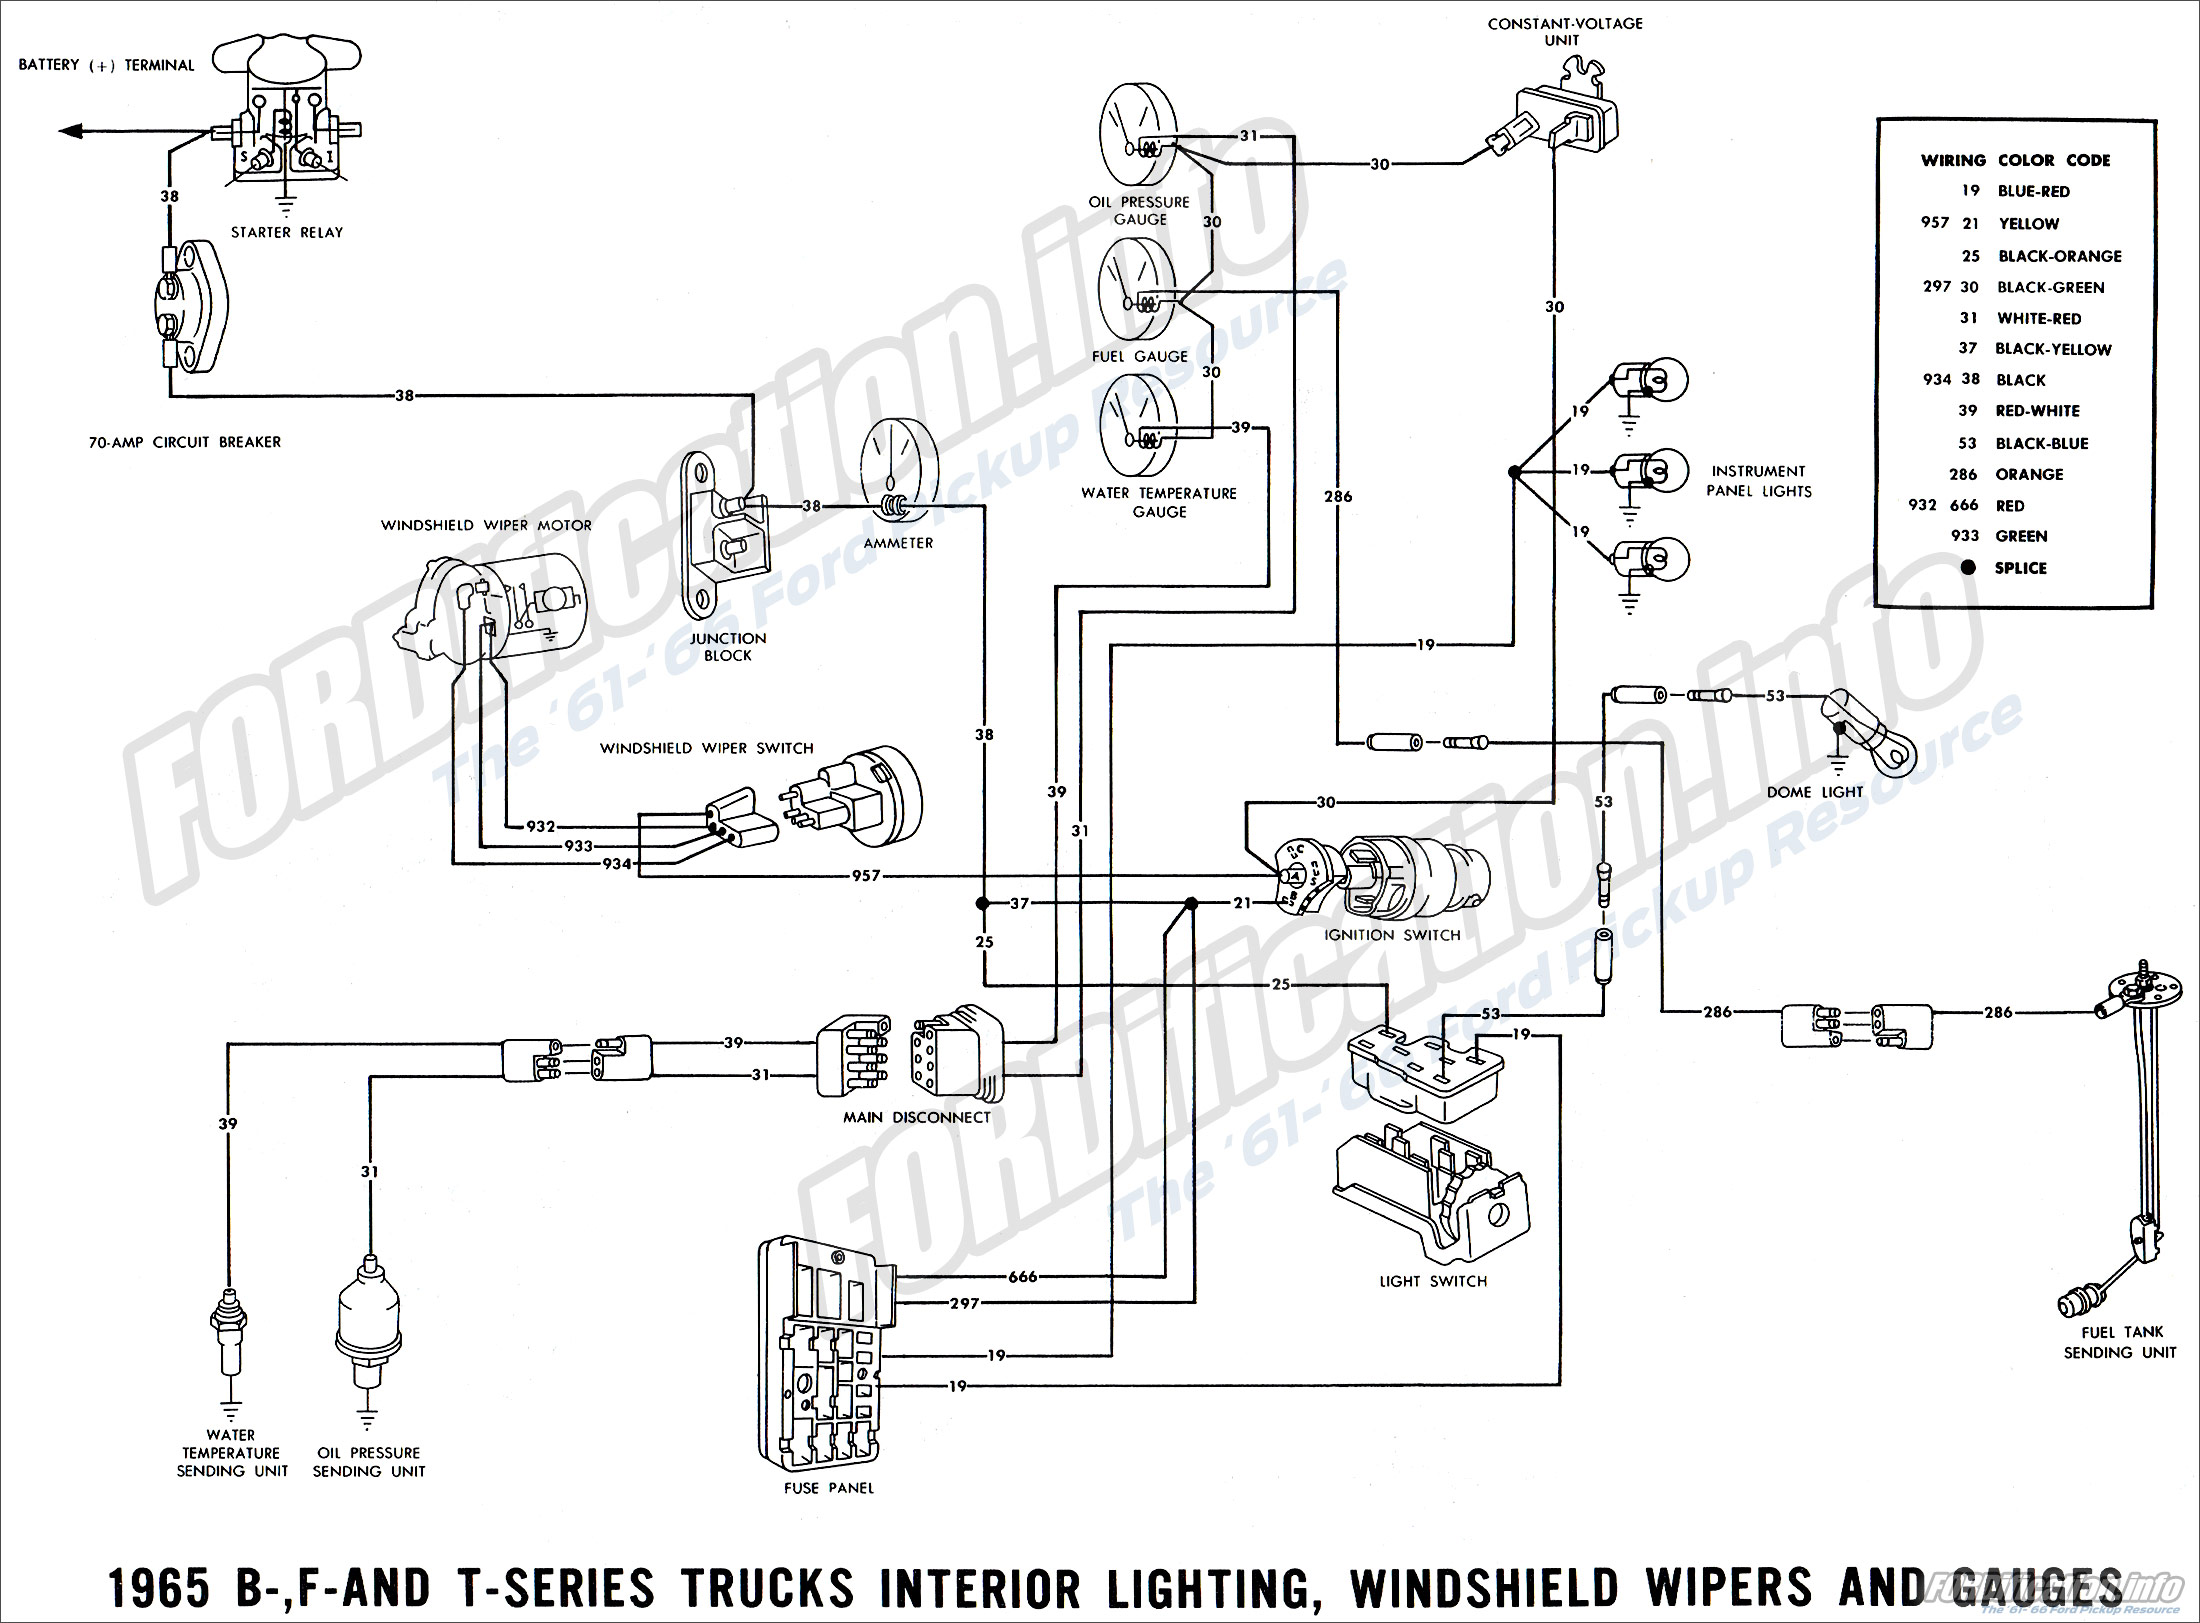 Ford Wiper Motor Wiring Diagram On Wiring Diagram For 1955